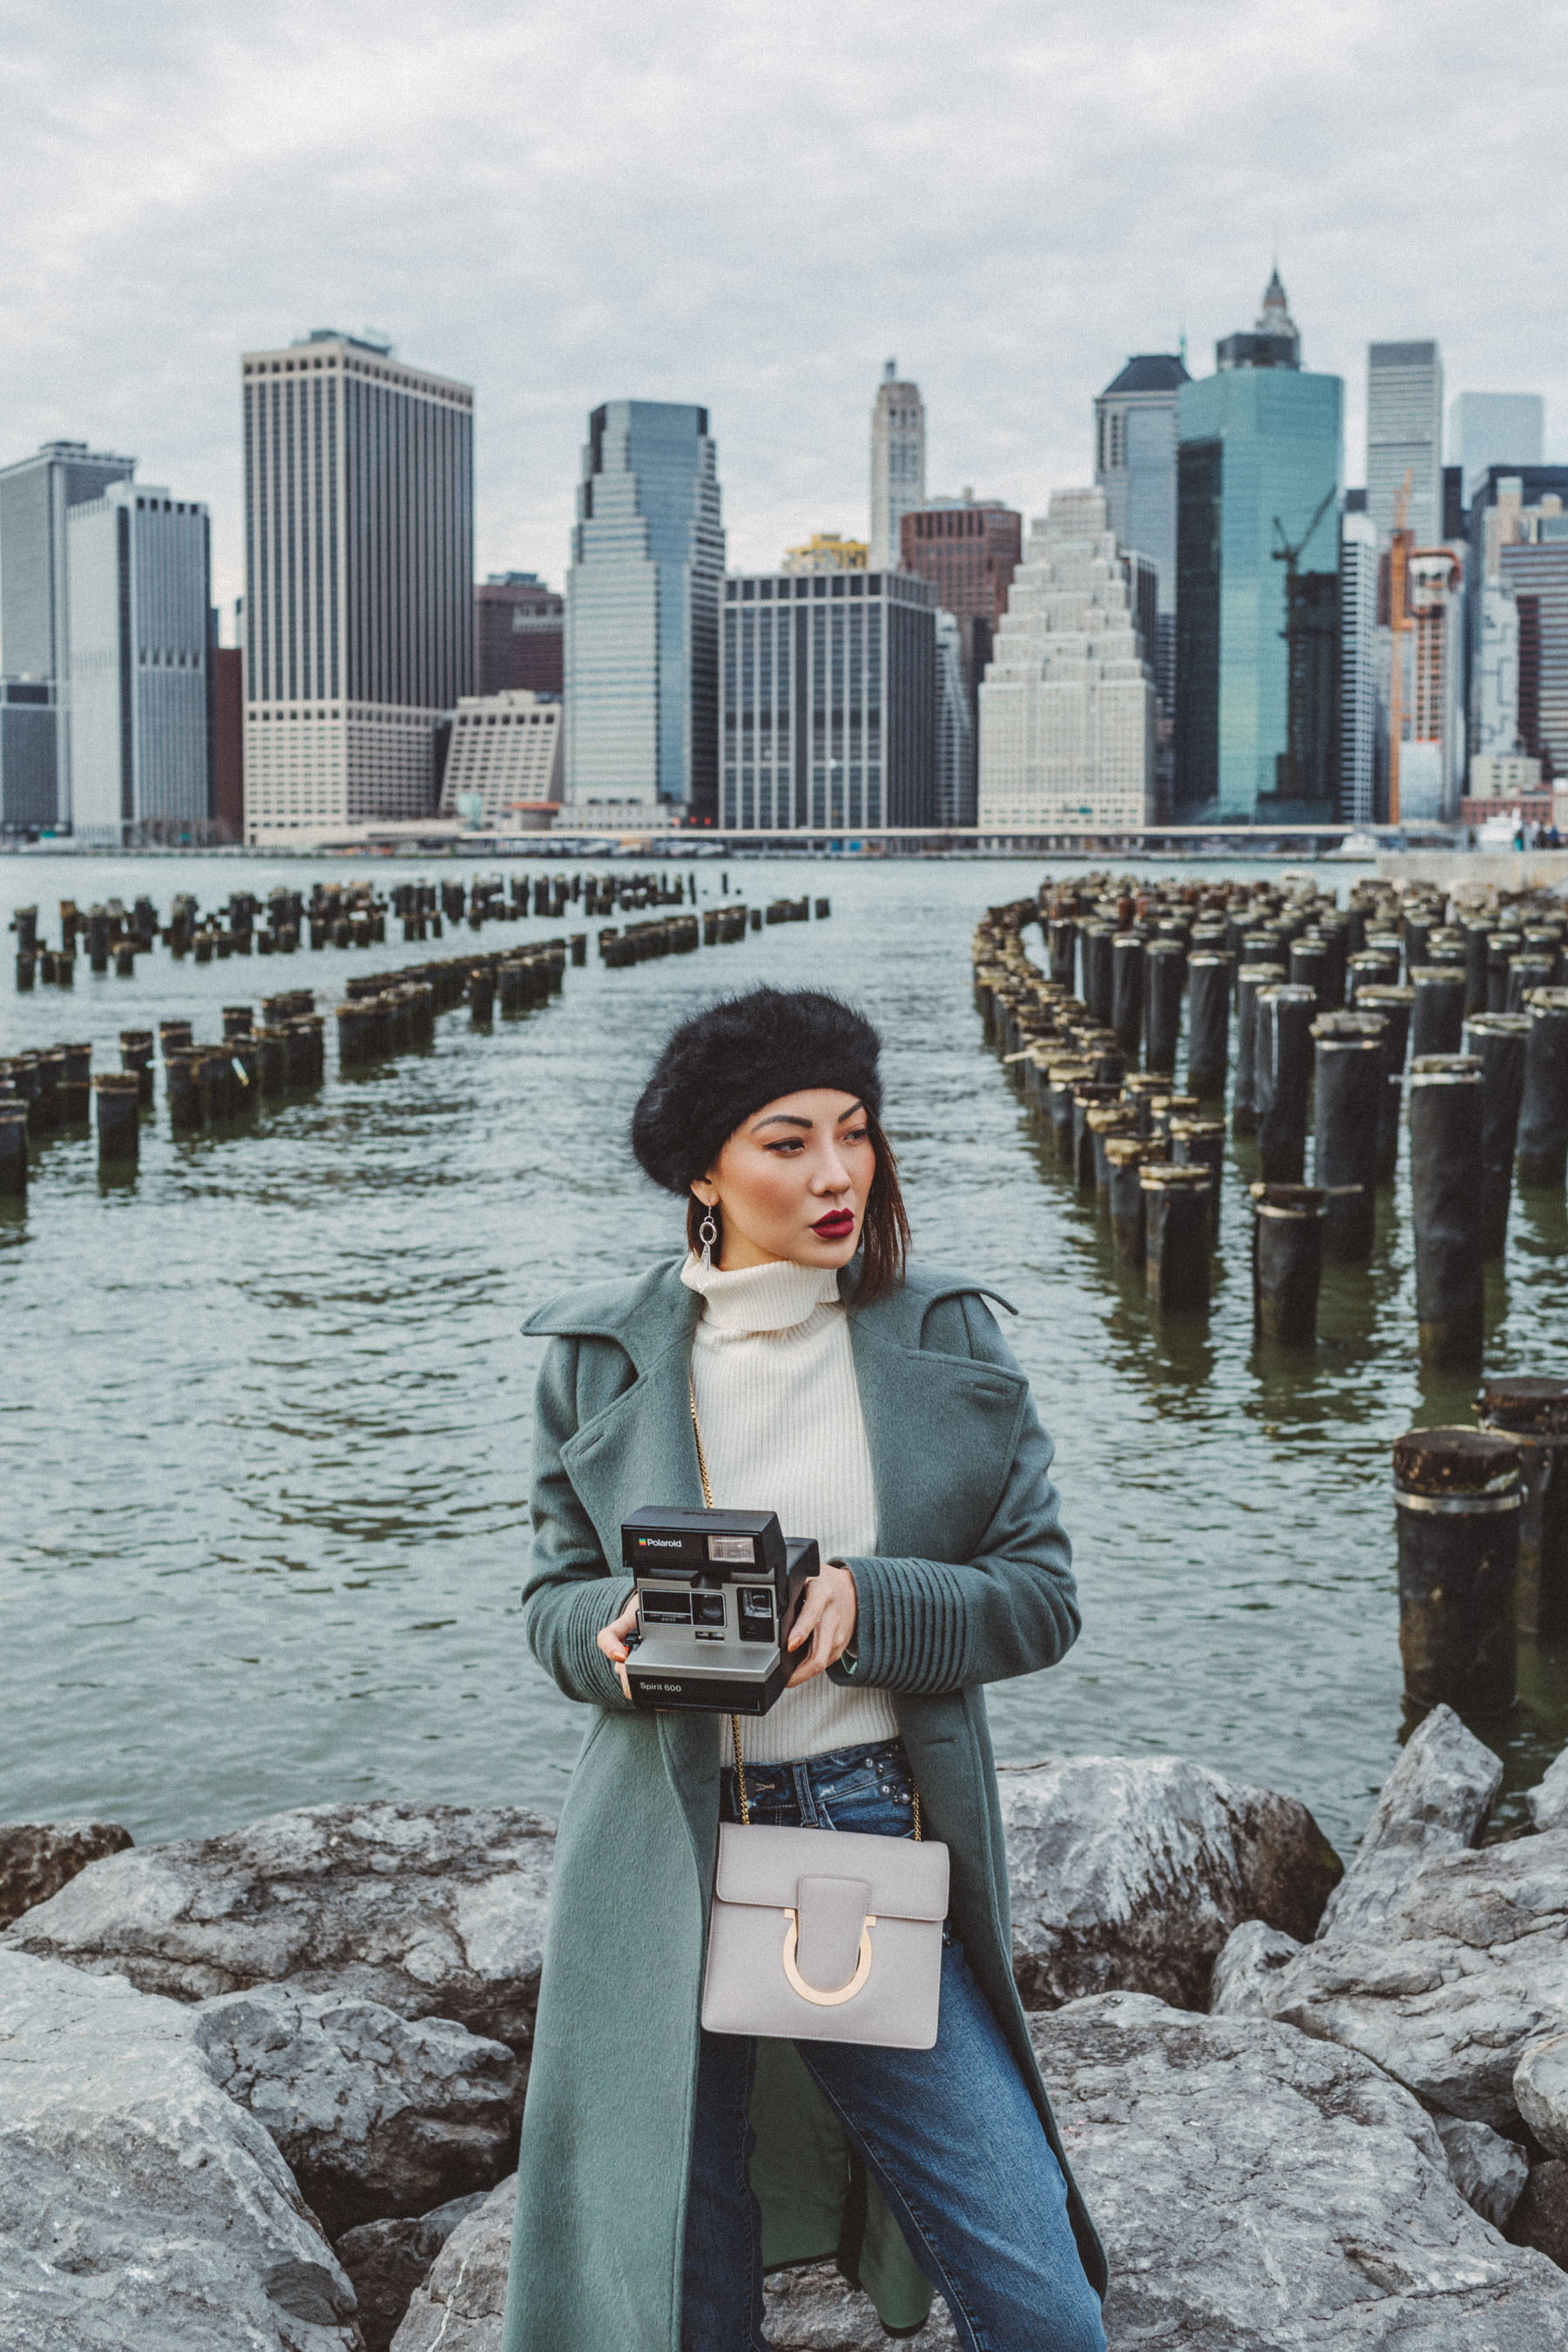 Instagram Outfits Round Up // Notjessfashion.com // Cozy Layered looks, jessica wang, fashion blogger, new york fashion blogger, street style fashion, ootd, asian blogger, parisian chic outfit, beret outfit, how to wear a beret, beret styling, chic winter style, new york fashion